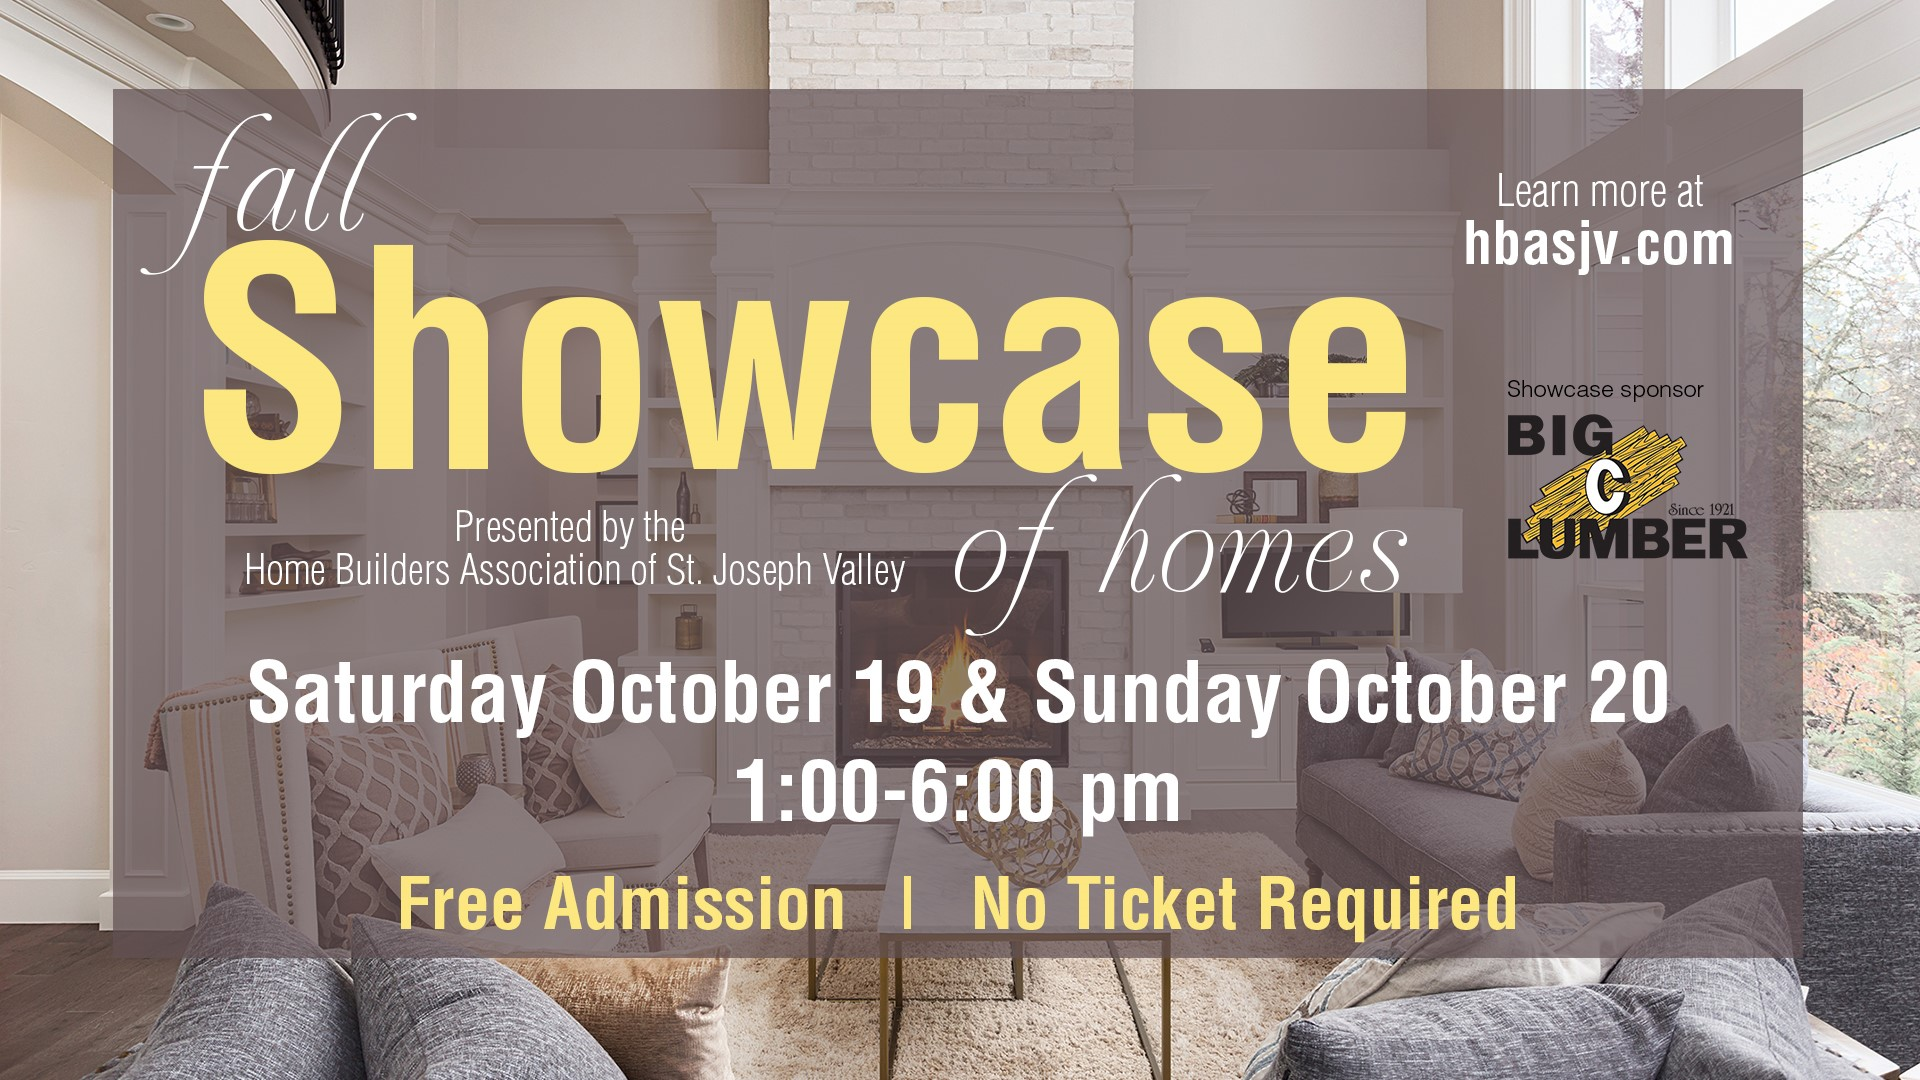 Fall Showcase 2019 - FB Event 1920x1080.jpg